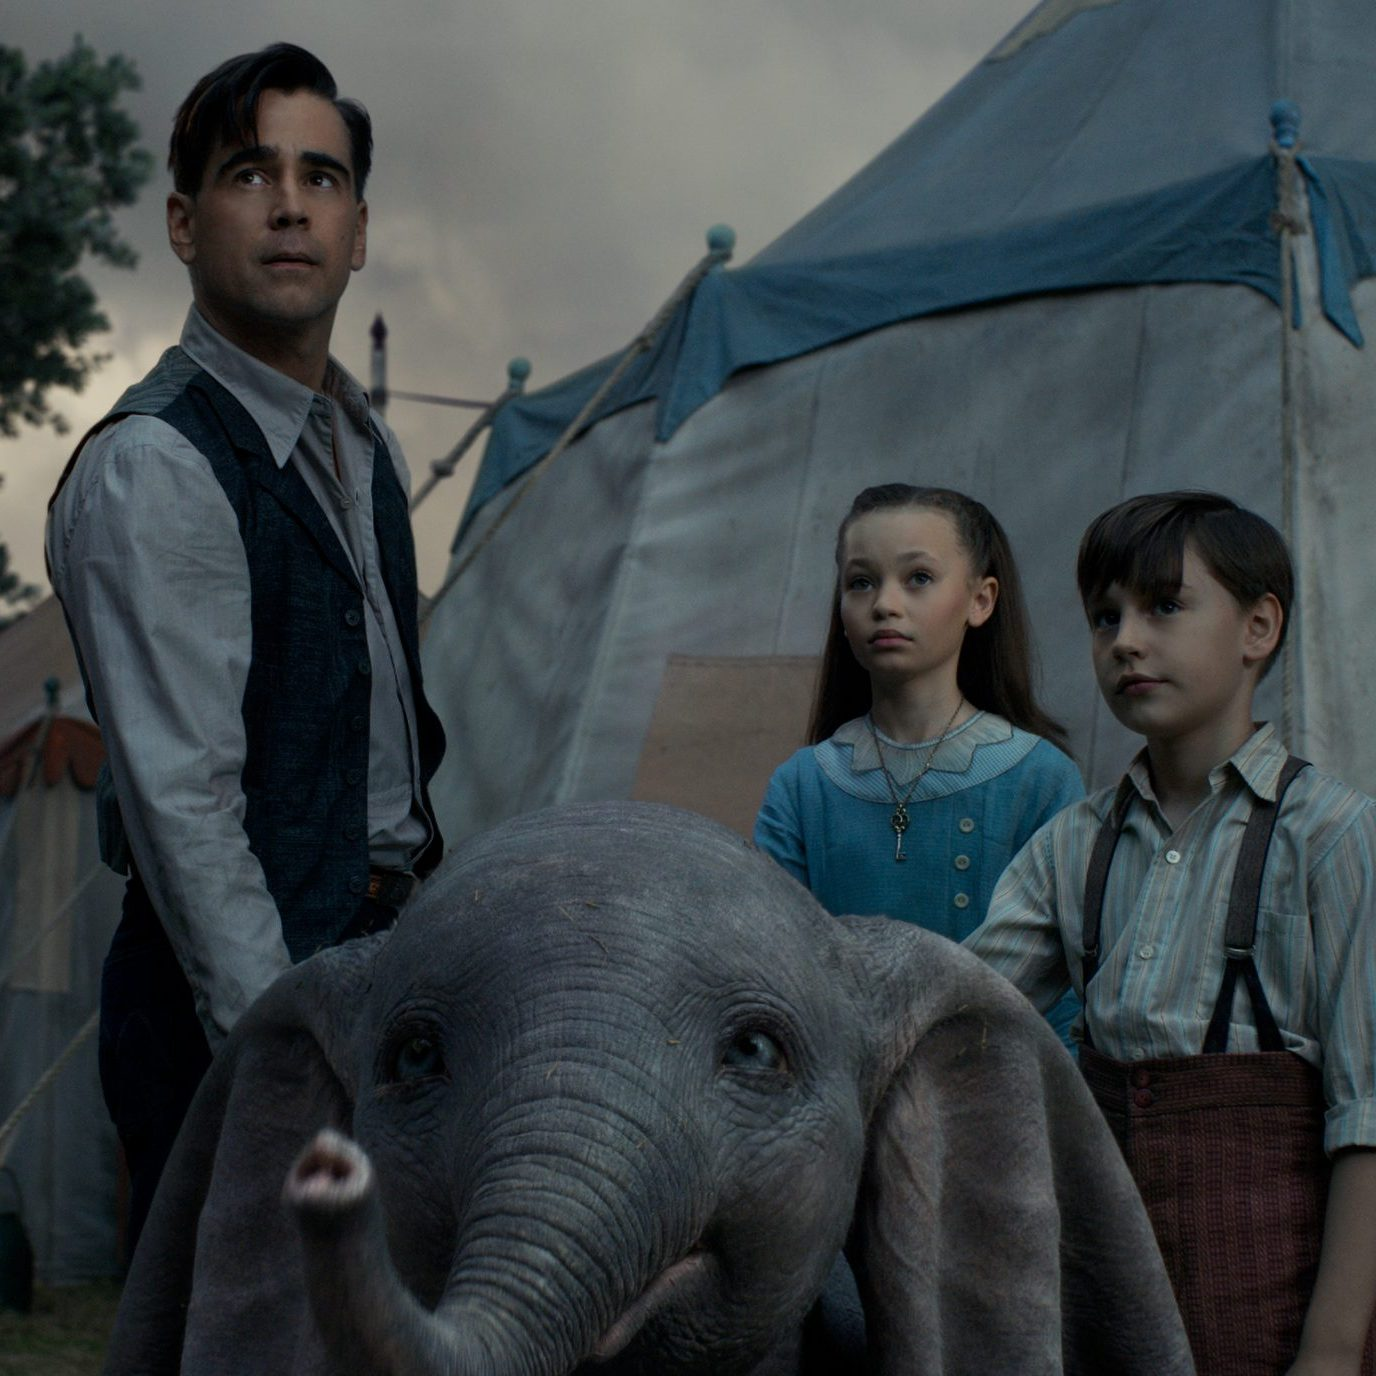 Dumbo5c3655a7eb849 scaled e1603972673994 20 Movie Remakes That Were Nothing Like The Original